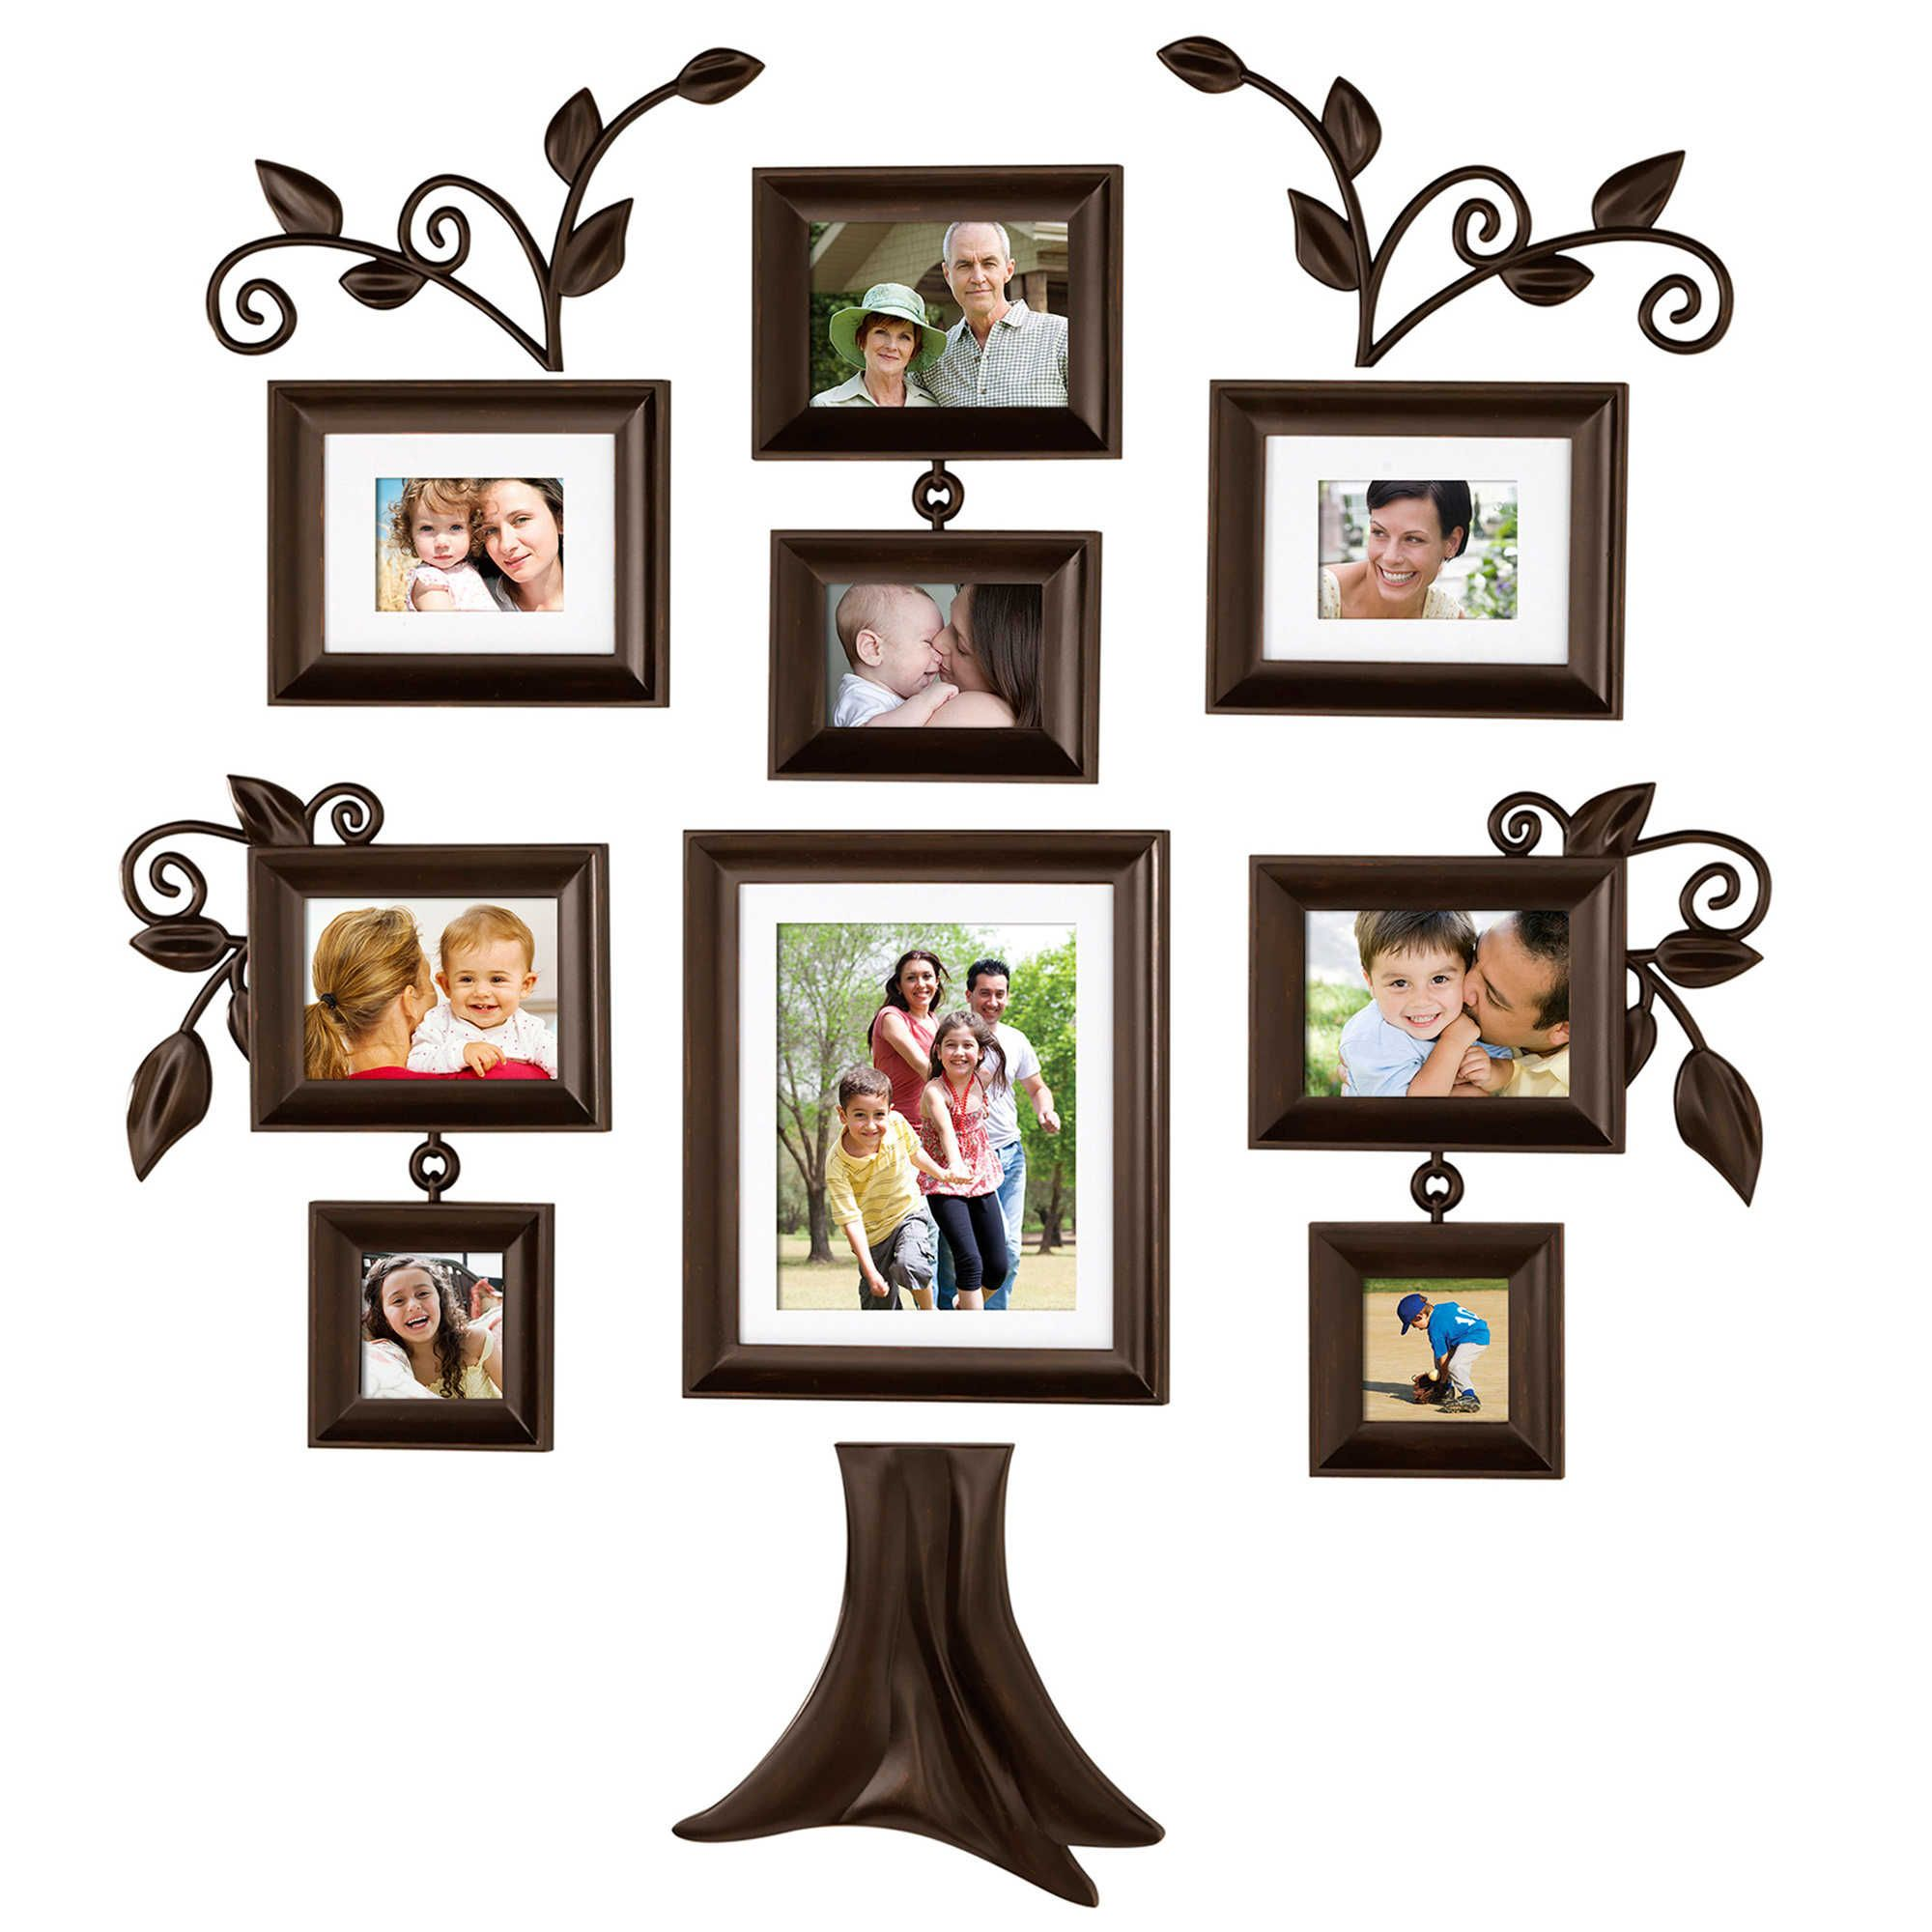 Wallverbs Family Tree 9 Piece Family Tree Collection Family Tree Wall Art Family Tree Wall Decor Family Tree Wall